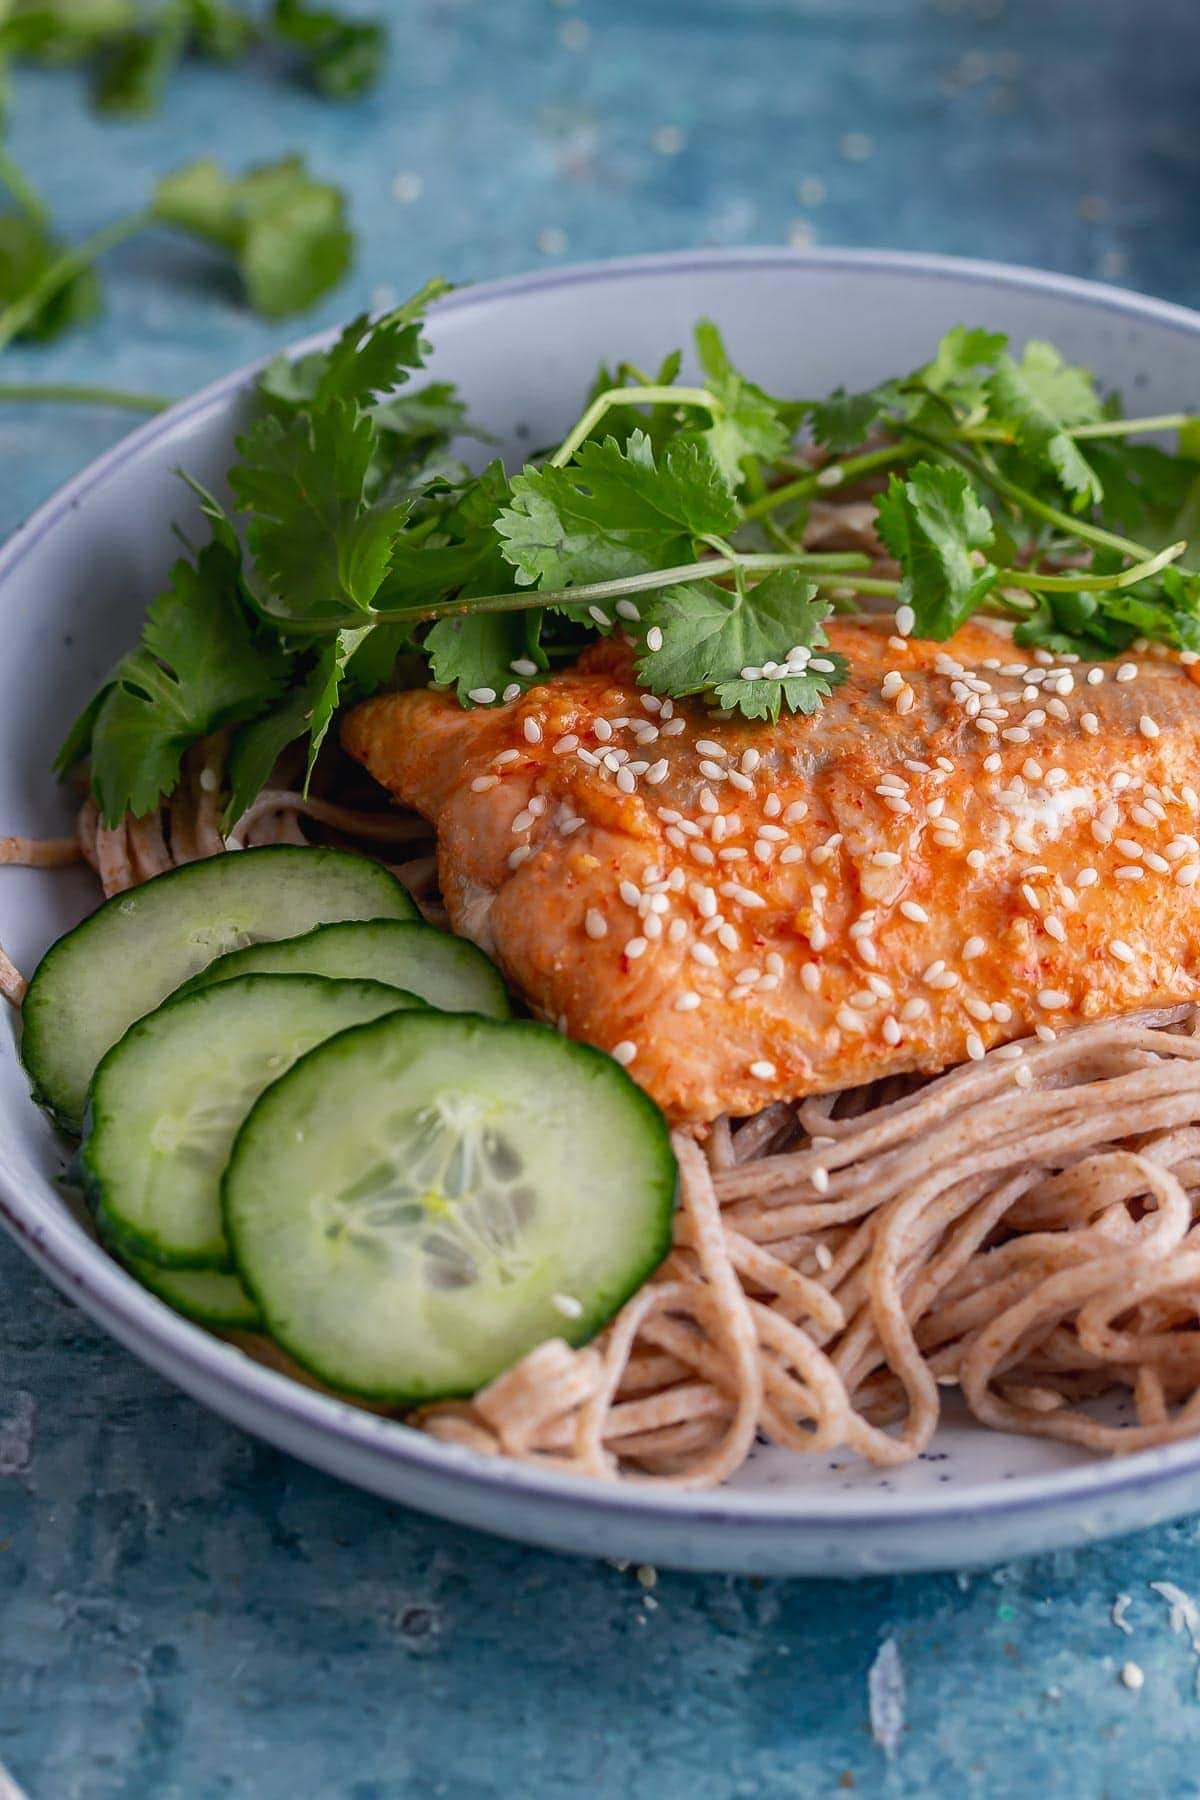 Bowl of noodles and glazed salmon on a blue surface